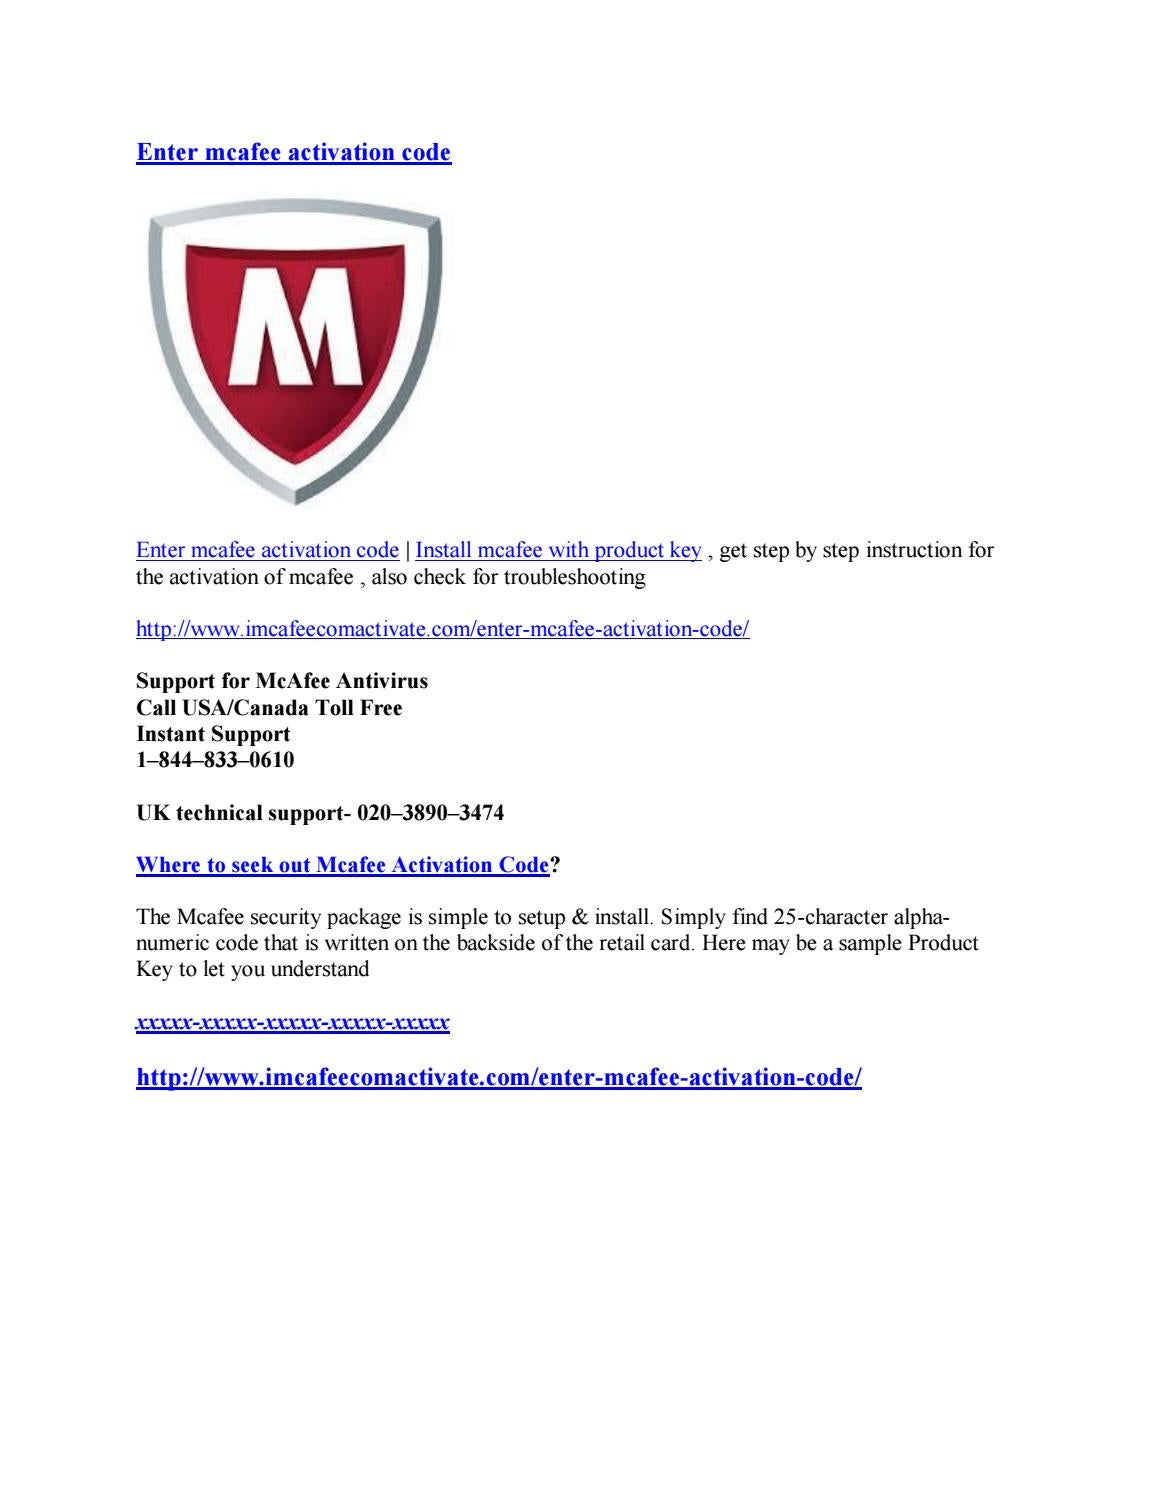 Enter mcafee activation code by sarika singh - issuu